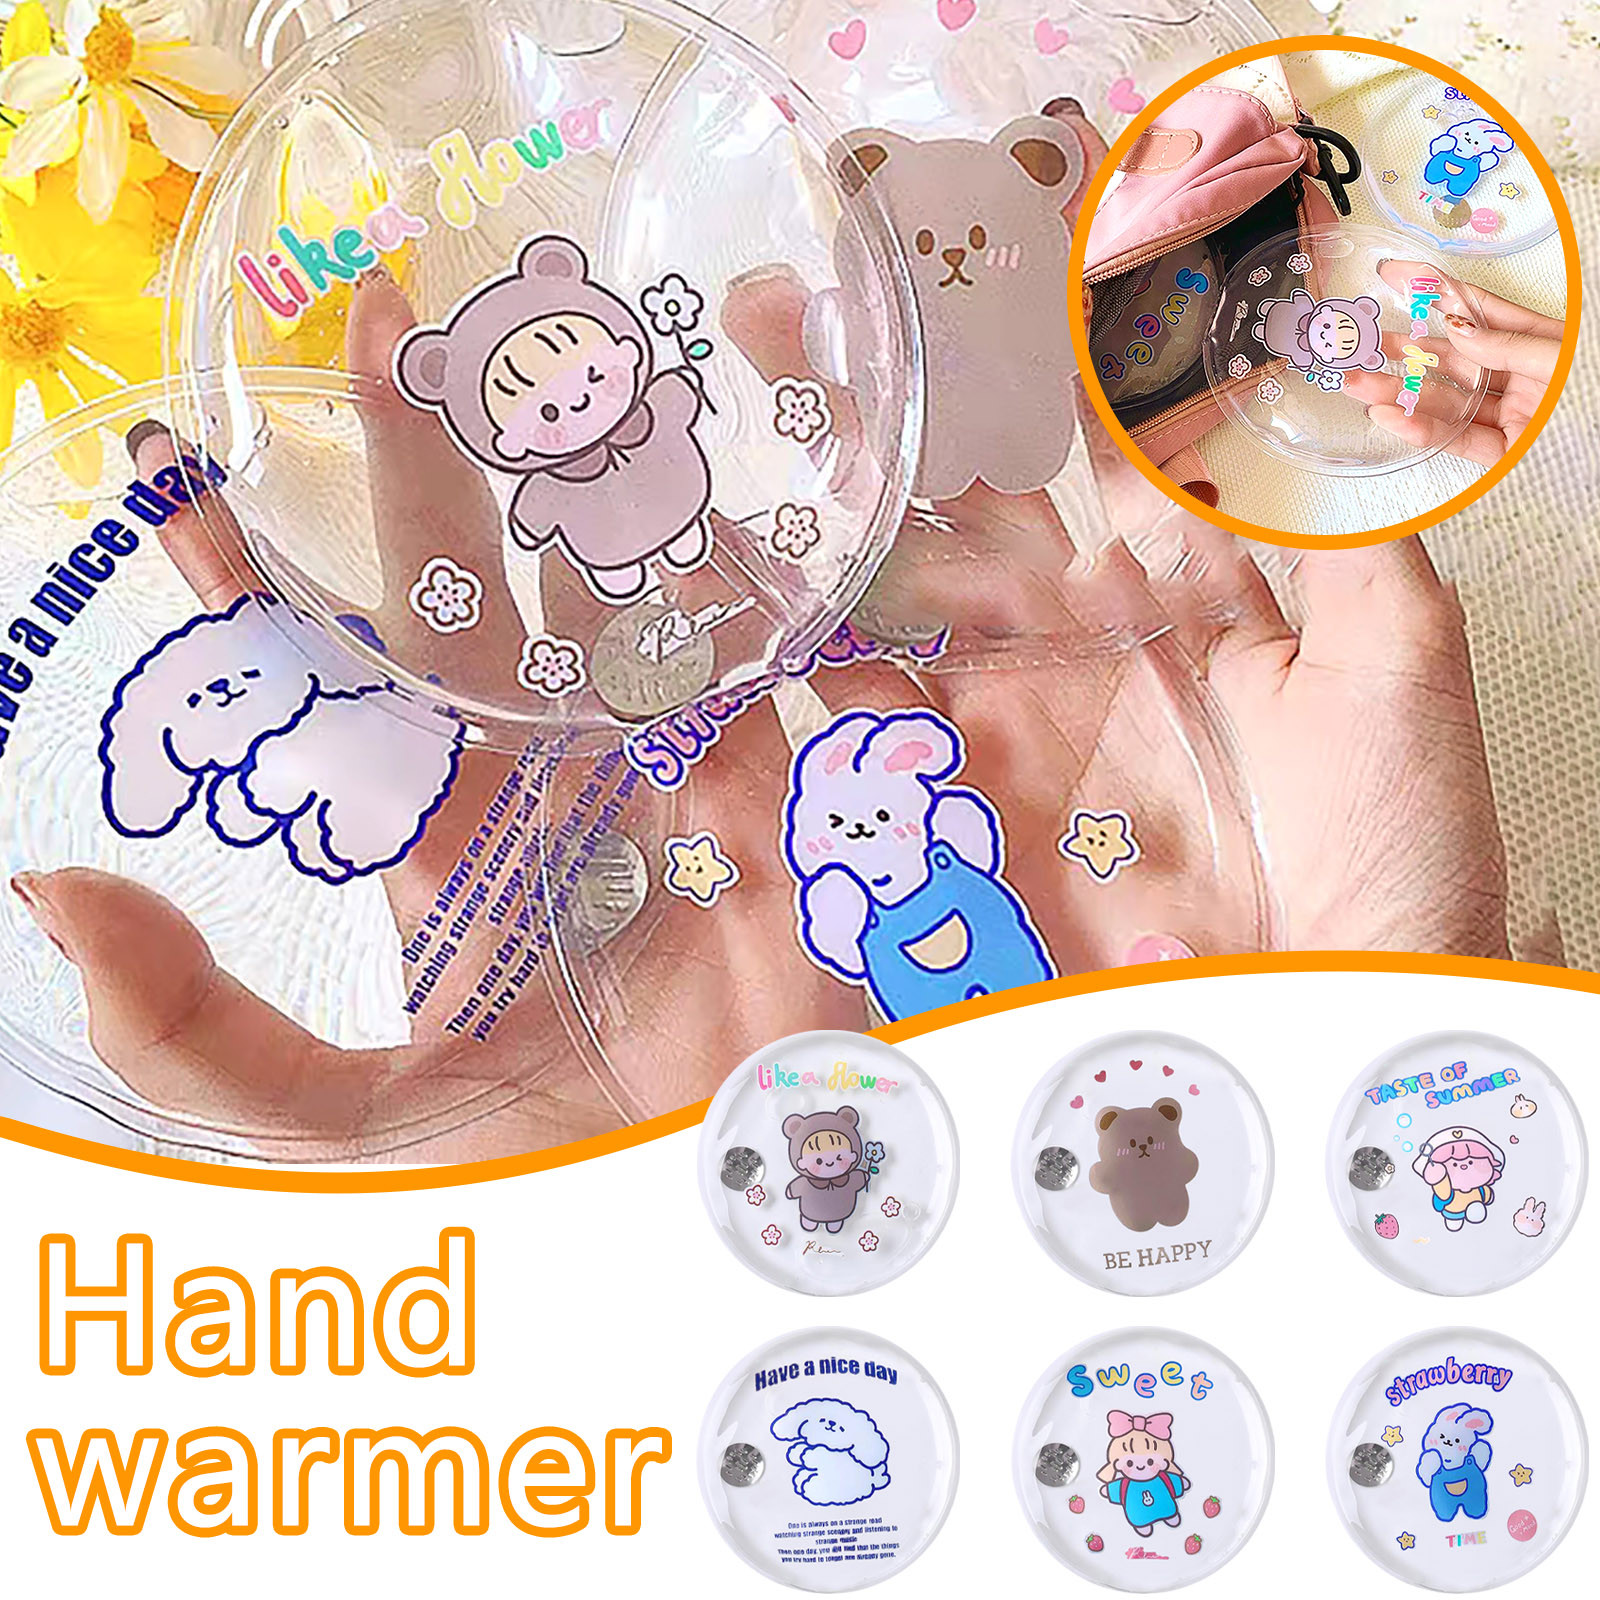 Mini Winter Reusable Gel Hand Warmer Cute Cartoon Instant Self Heating Pack Warmer Warm Supplies Hot Water Bottle Bye Bye Hot45#